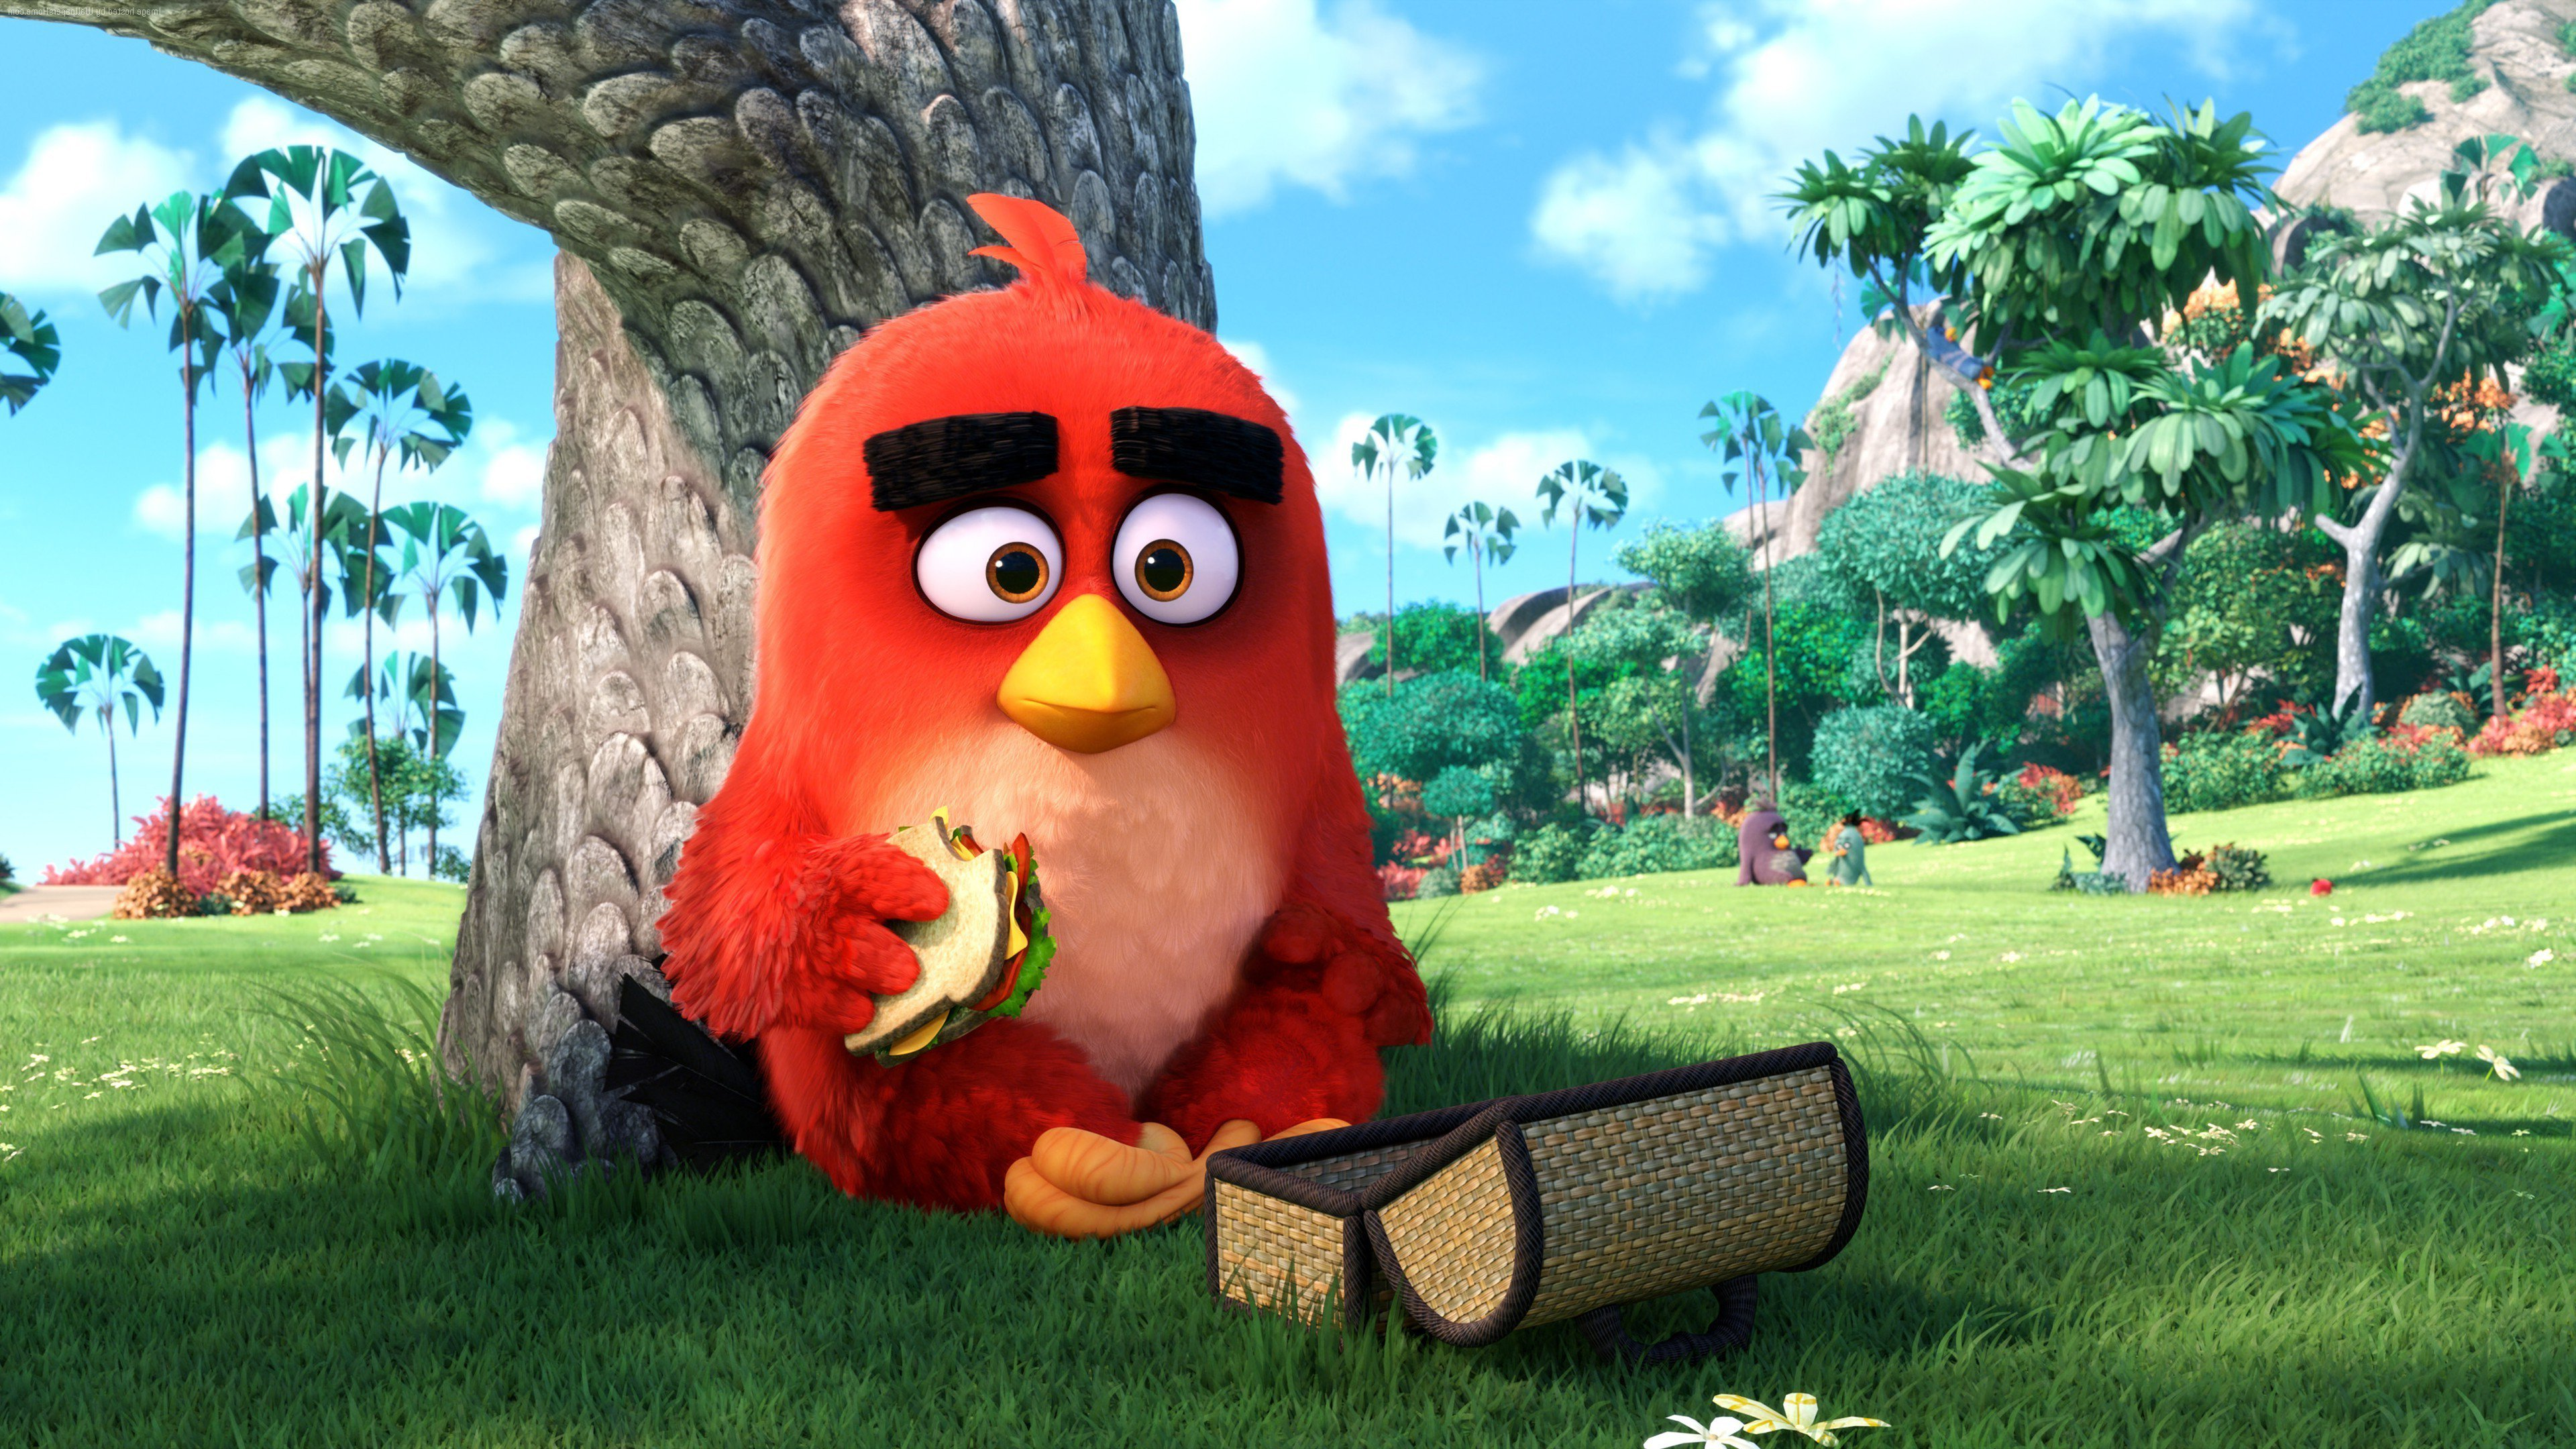 Angry Birds Movie Characters: 2048x1152 Angry Birds Main Character 2048x1152 Resolution